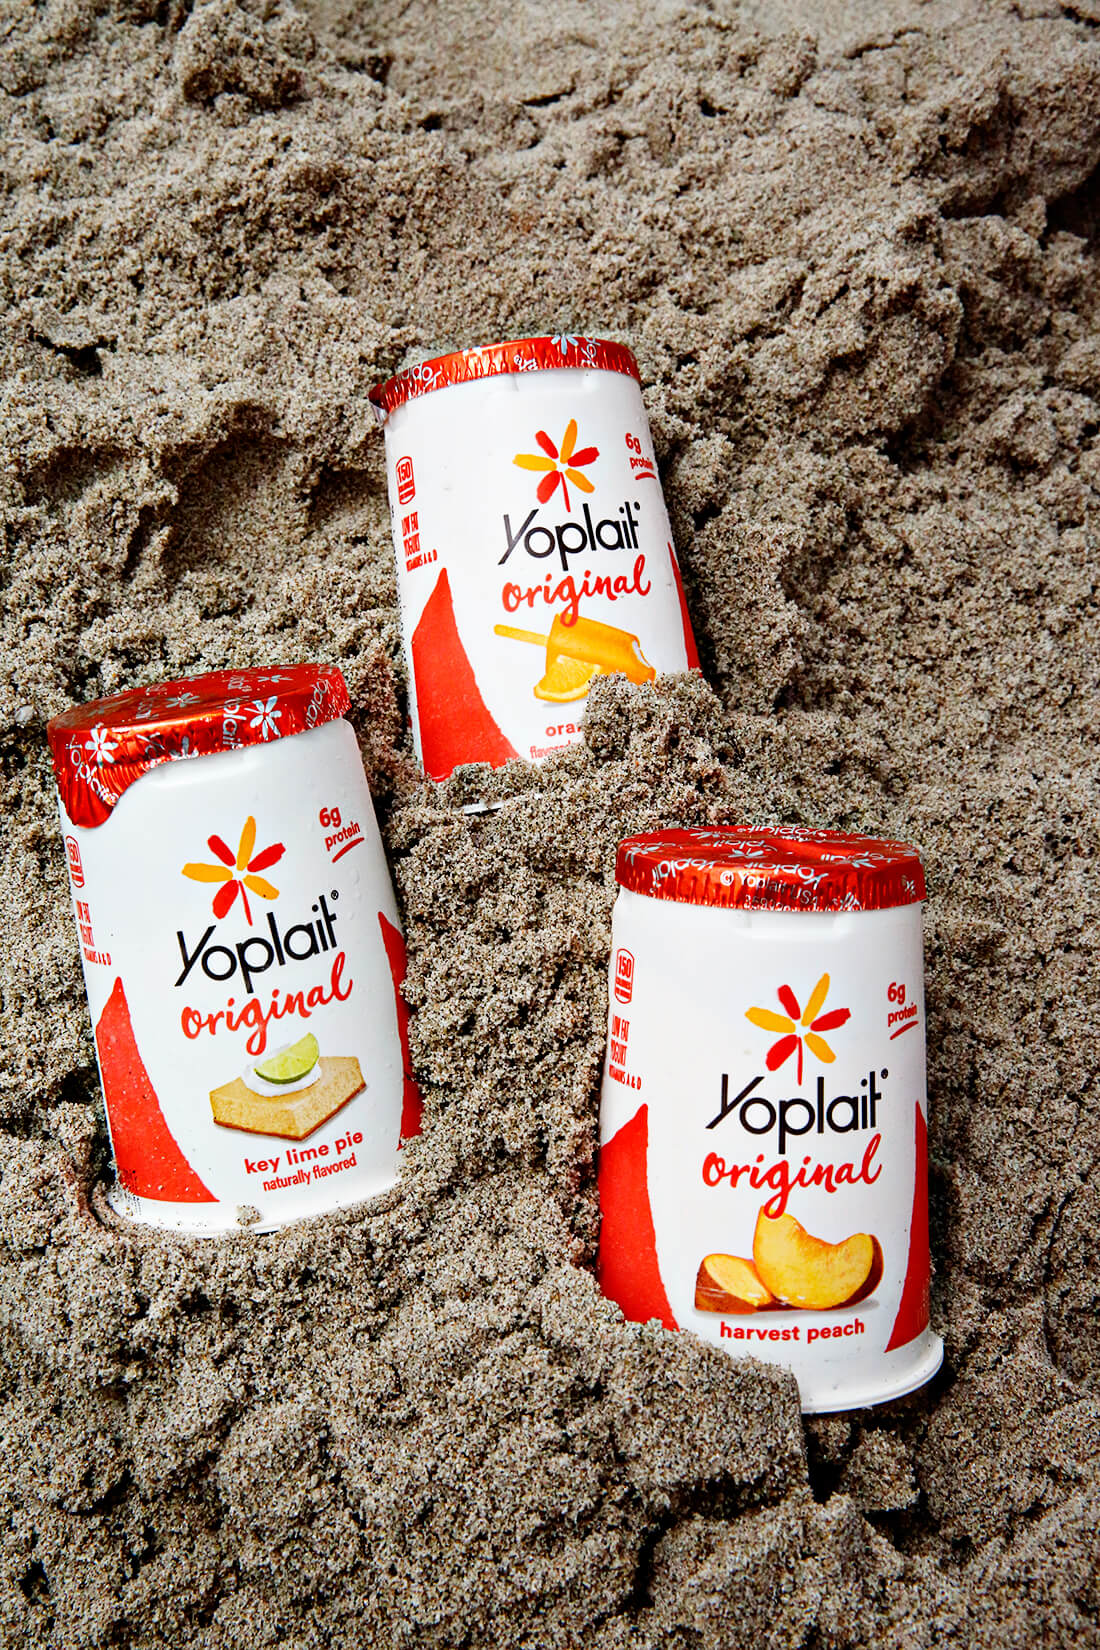 Yoplait yogurt on the beach